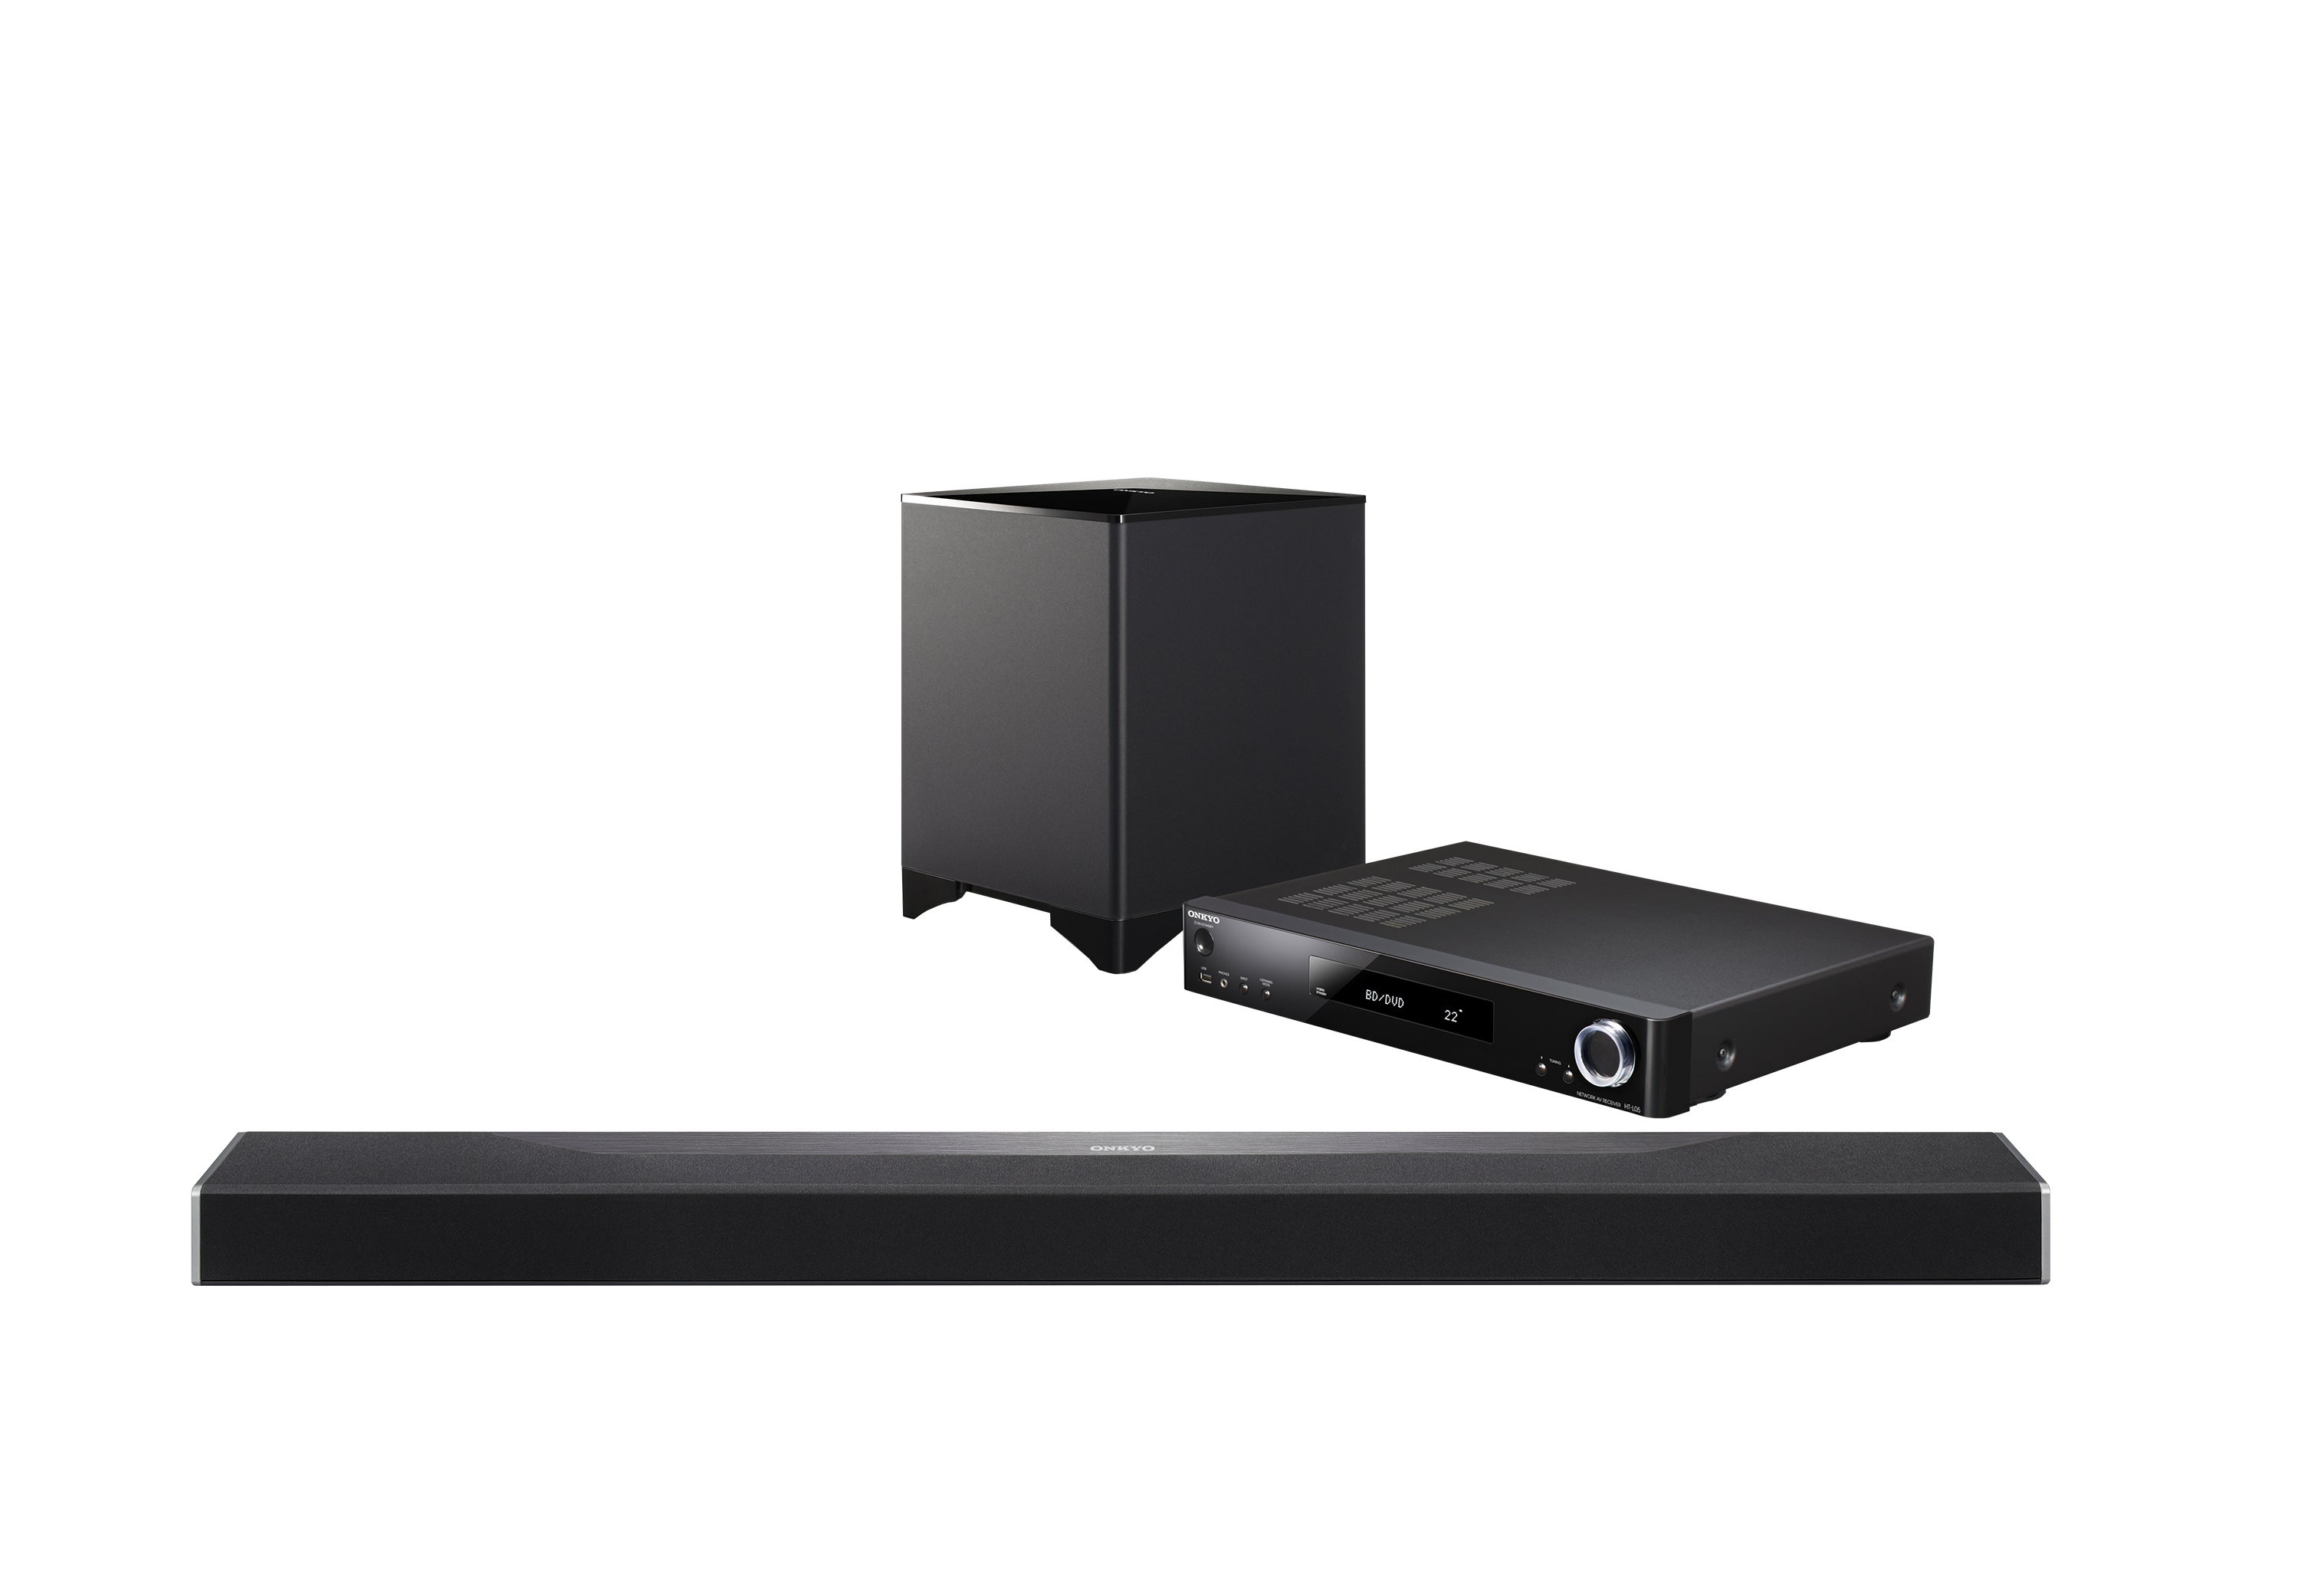 Best soundbars of 2018: Reviews and buying advice | TechHive